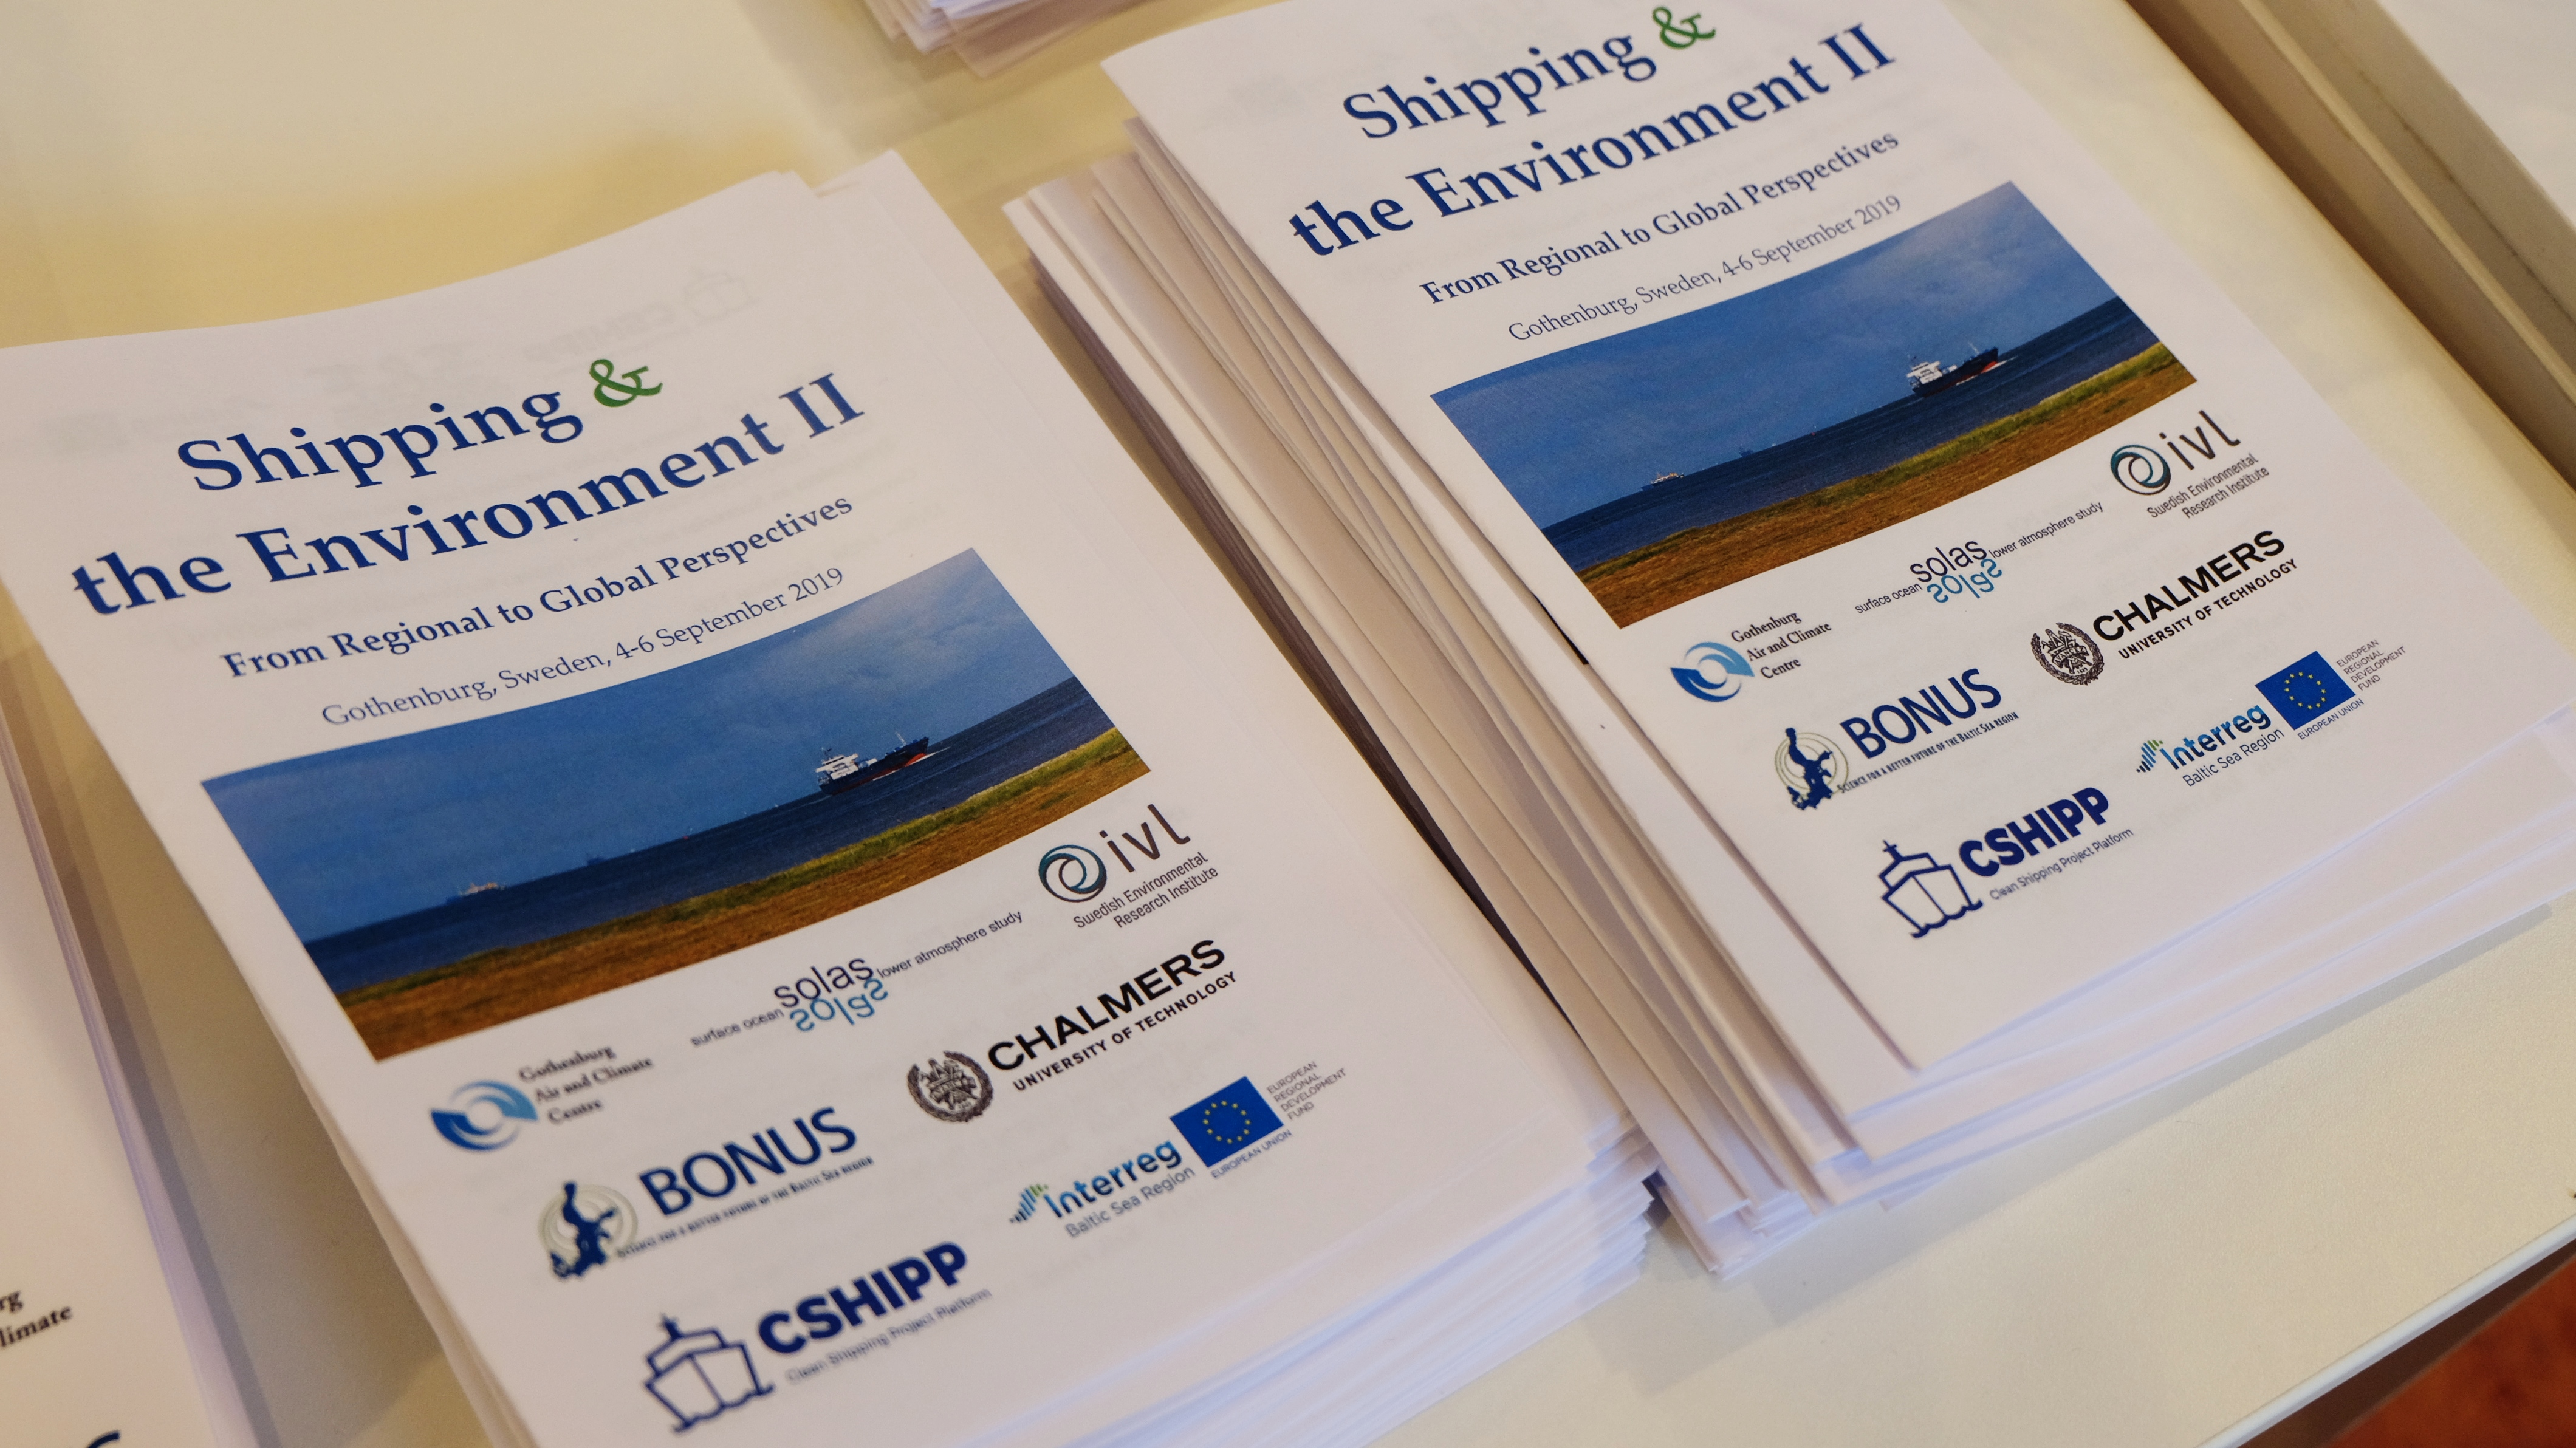 The environmental impacts of shipping discussed at an international conference in Gothenburg